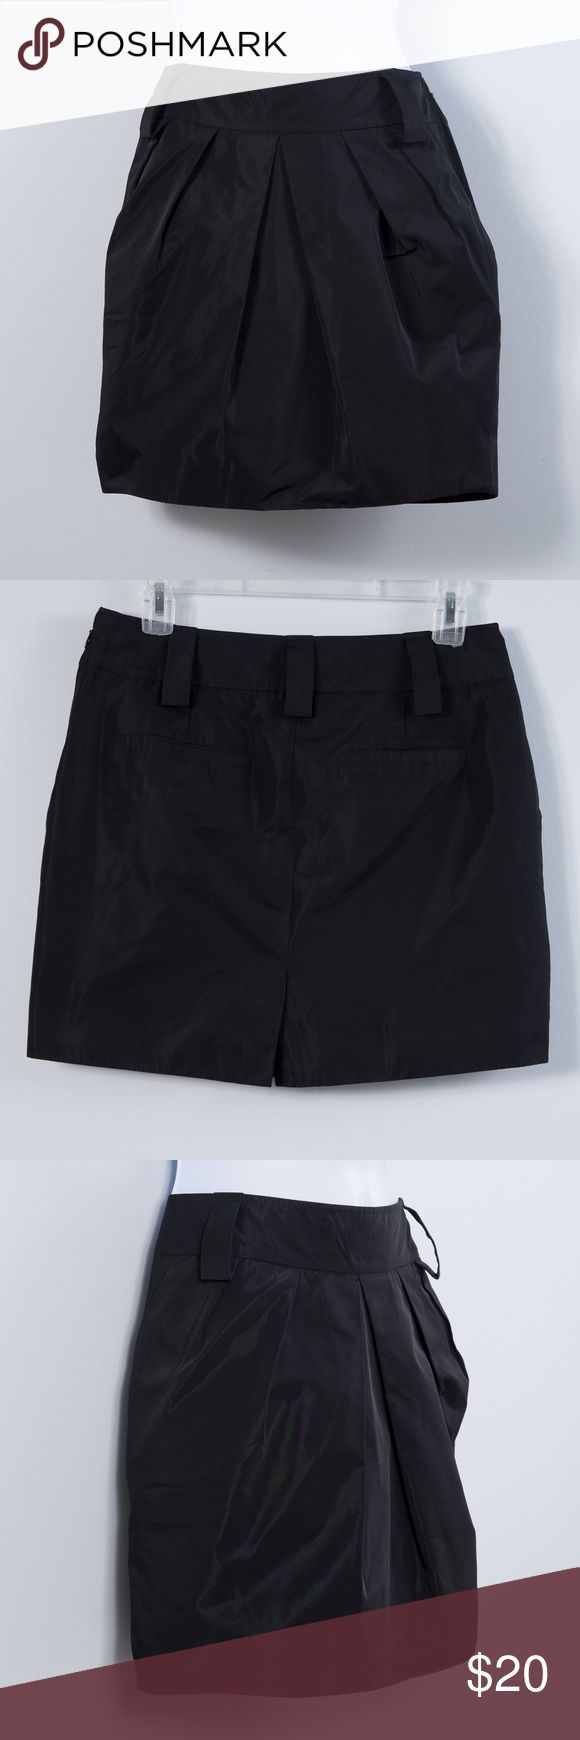 """BCBGeneration Skirt Beautiful and versatile skirt by BCBGeneration.Pleated front with two slit pockets in back and extra large belt loops.Measures 15.75"""" front center.Shell 100% polyester, lining 100% acetate.Excellent condition - worn once.Women's size 6. BCBGeneration Skirts"""